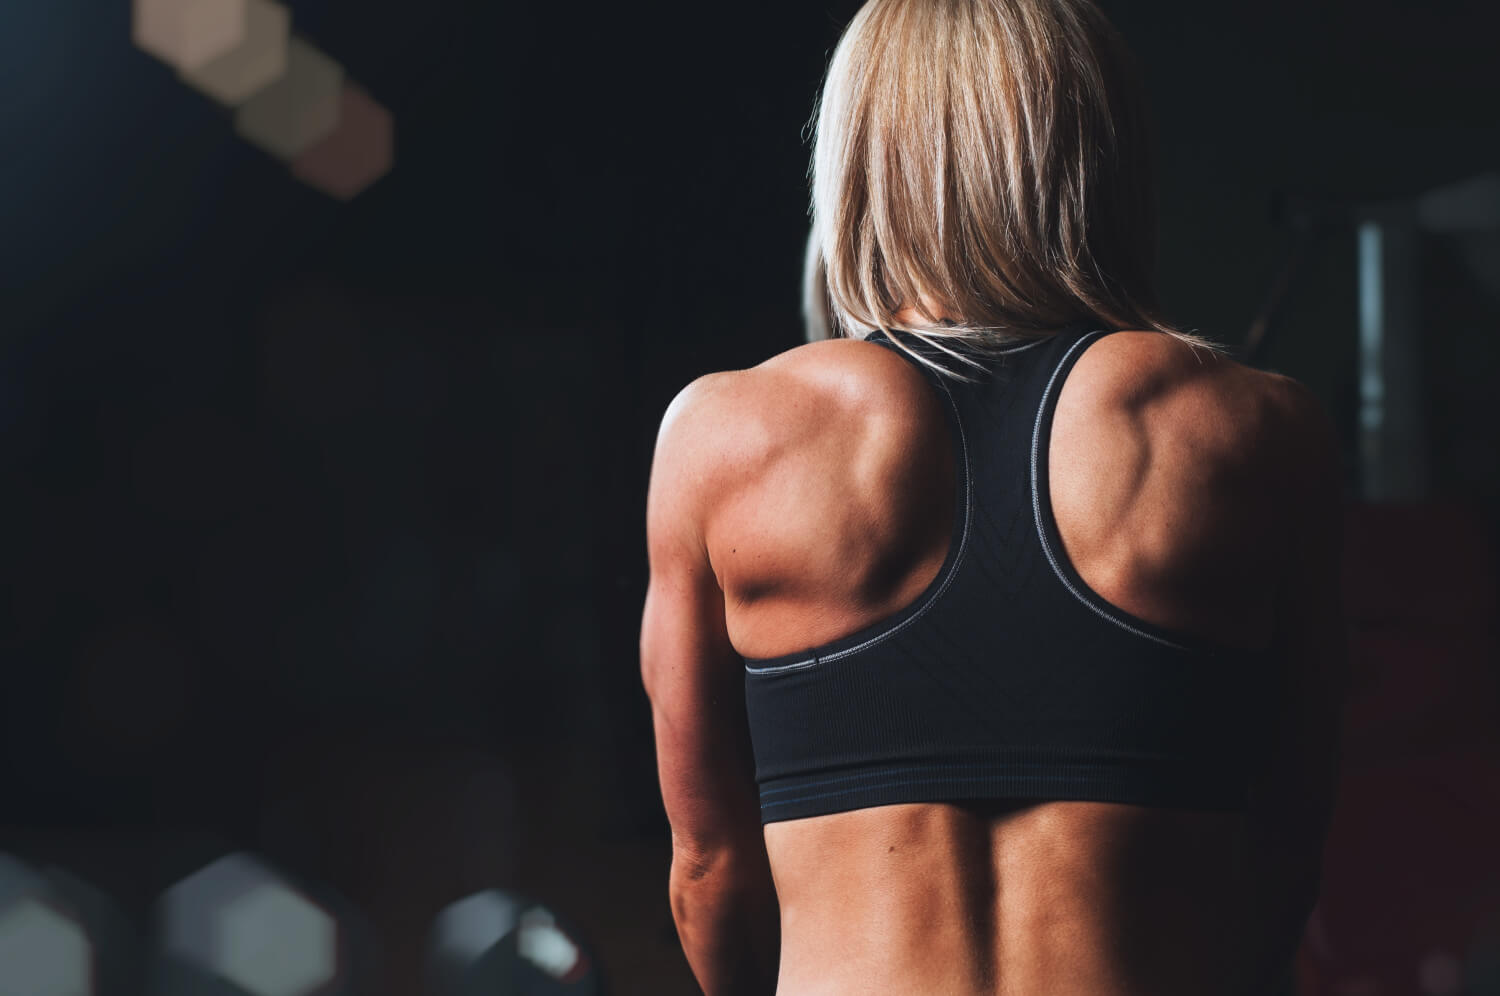 Why Every Woman Should Be Strength Training According to Science